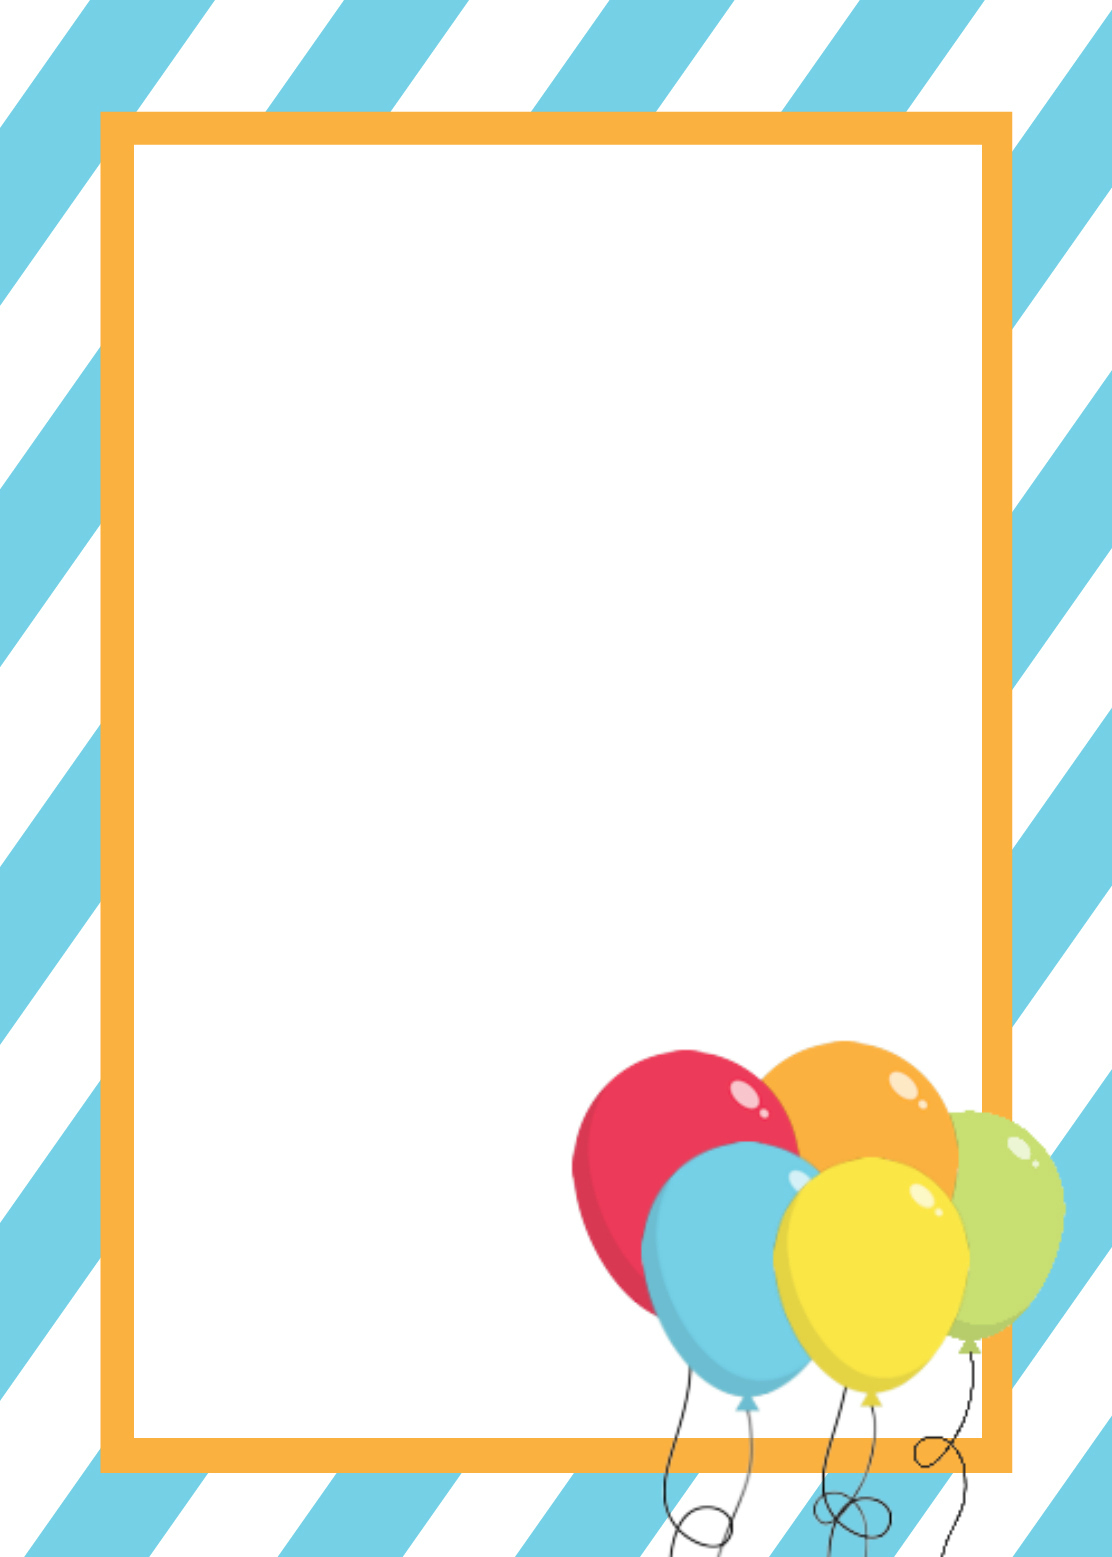 Free Printable Birthday Invitation Templates – Printable Birthday Party Invitation Cards